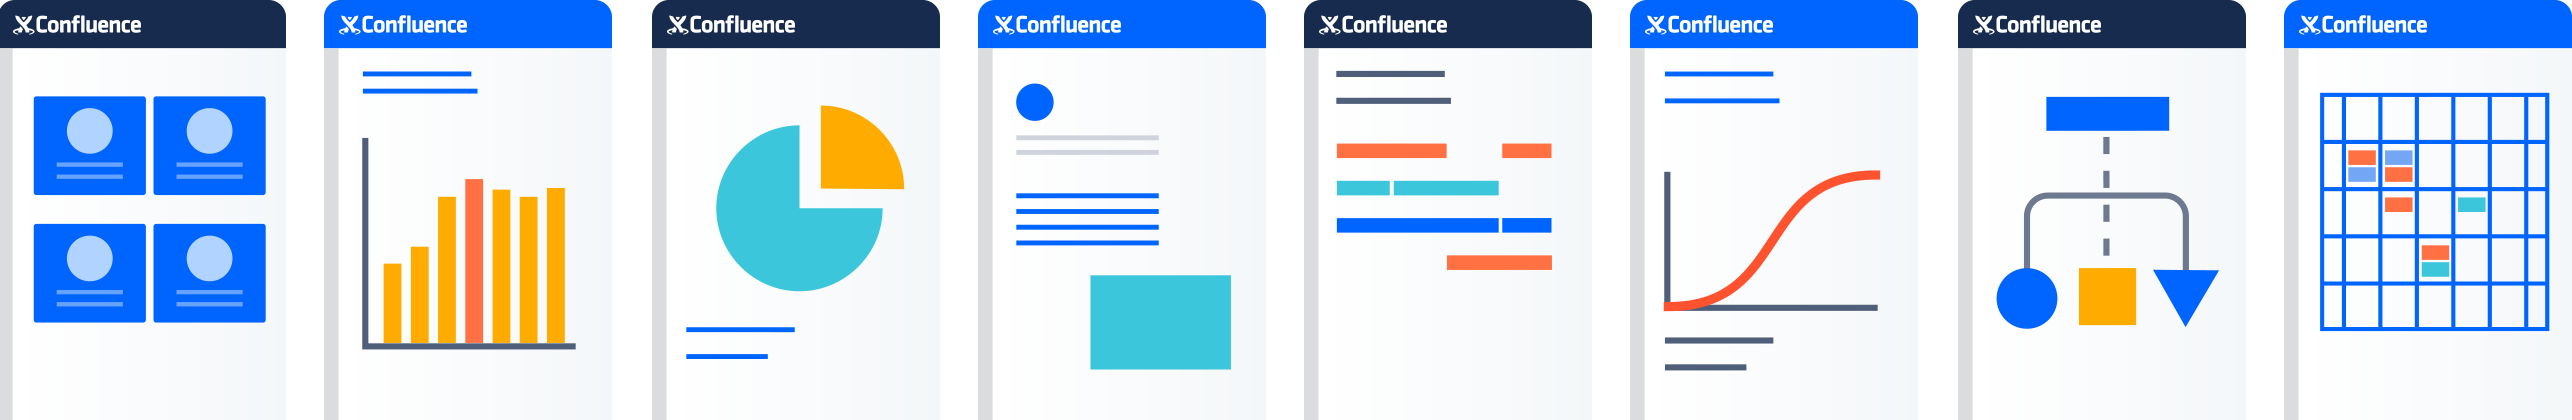 Confluence content collaboration software pages